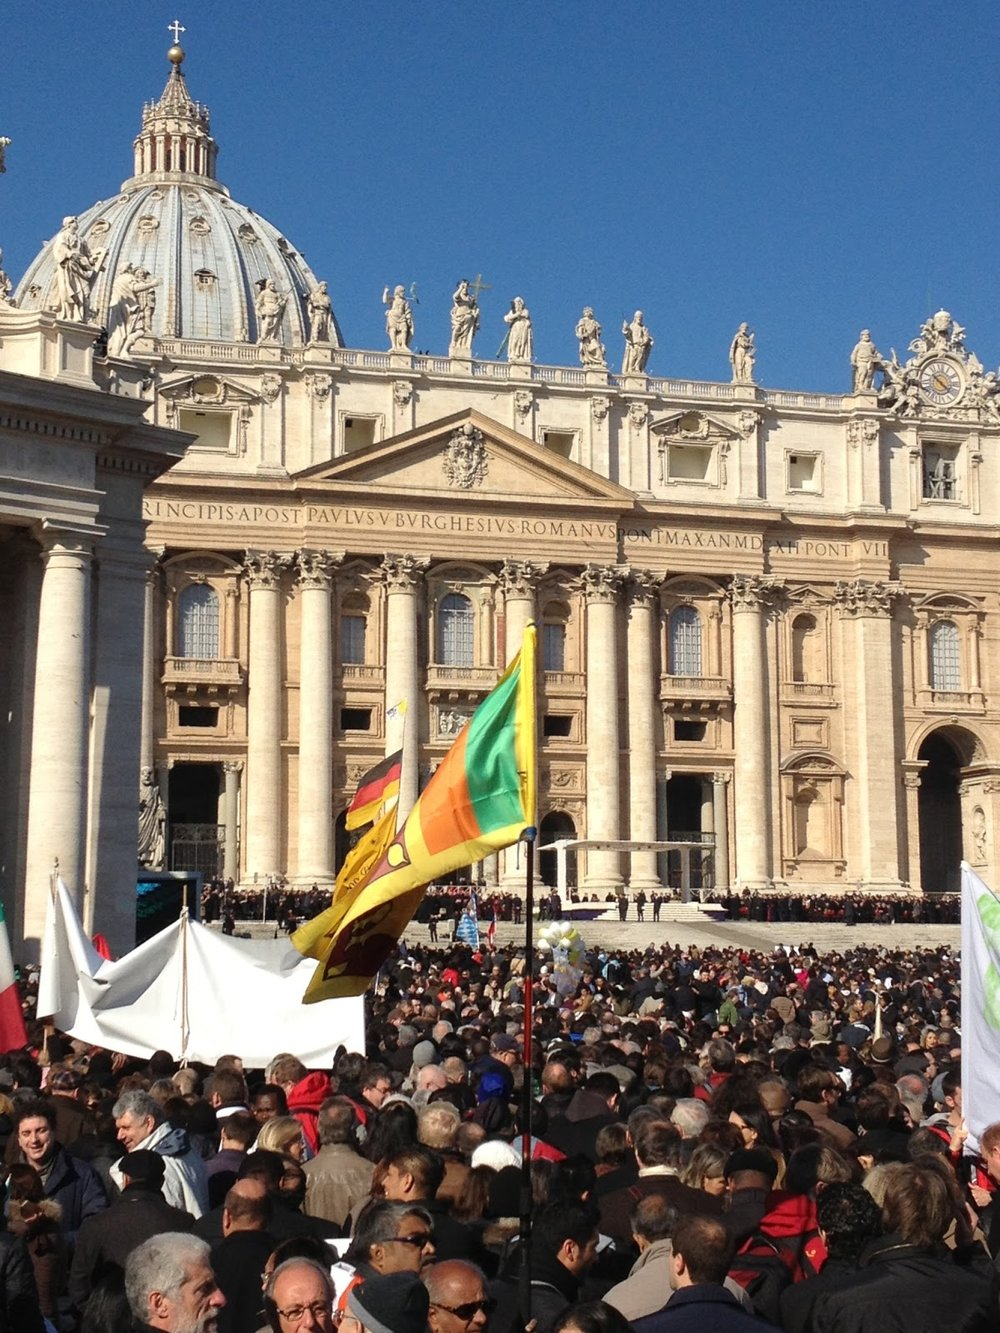 Pope Benedict XVI's final audience, St. Peter's Square, 27 February 2013